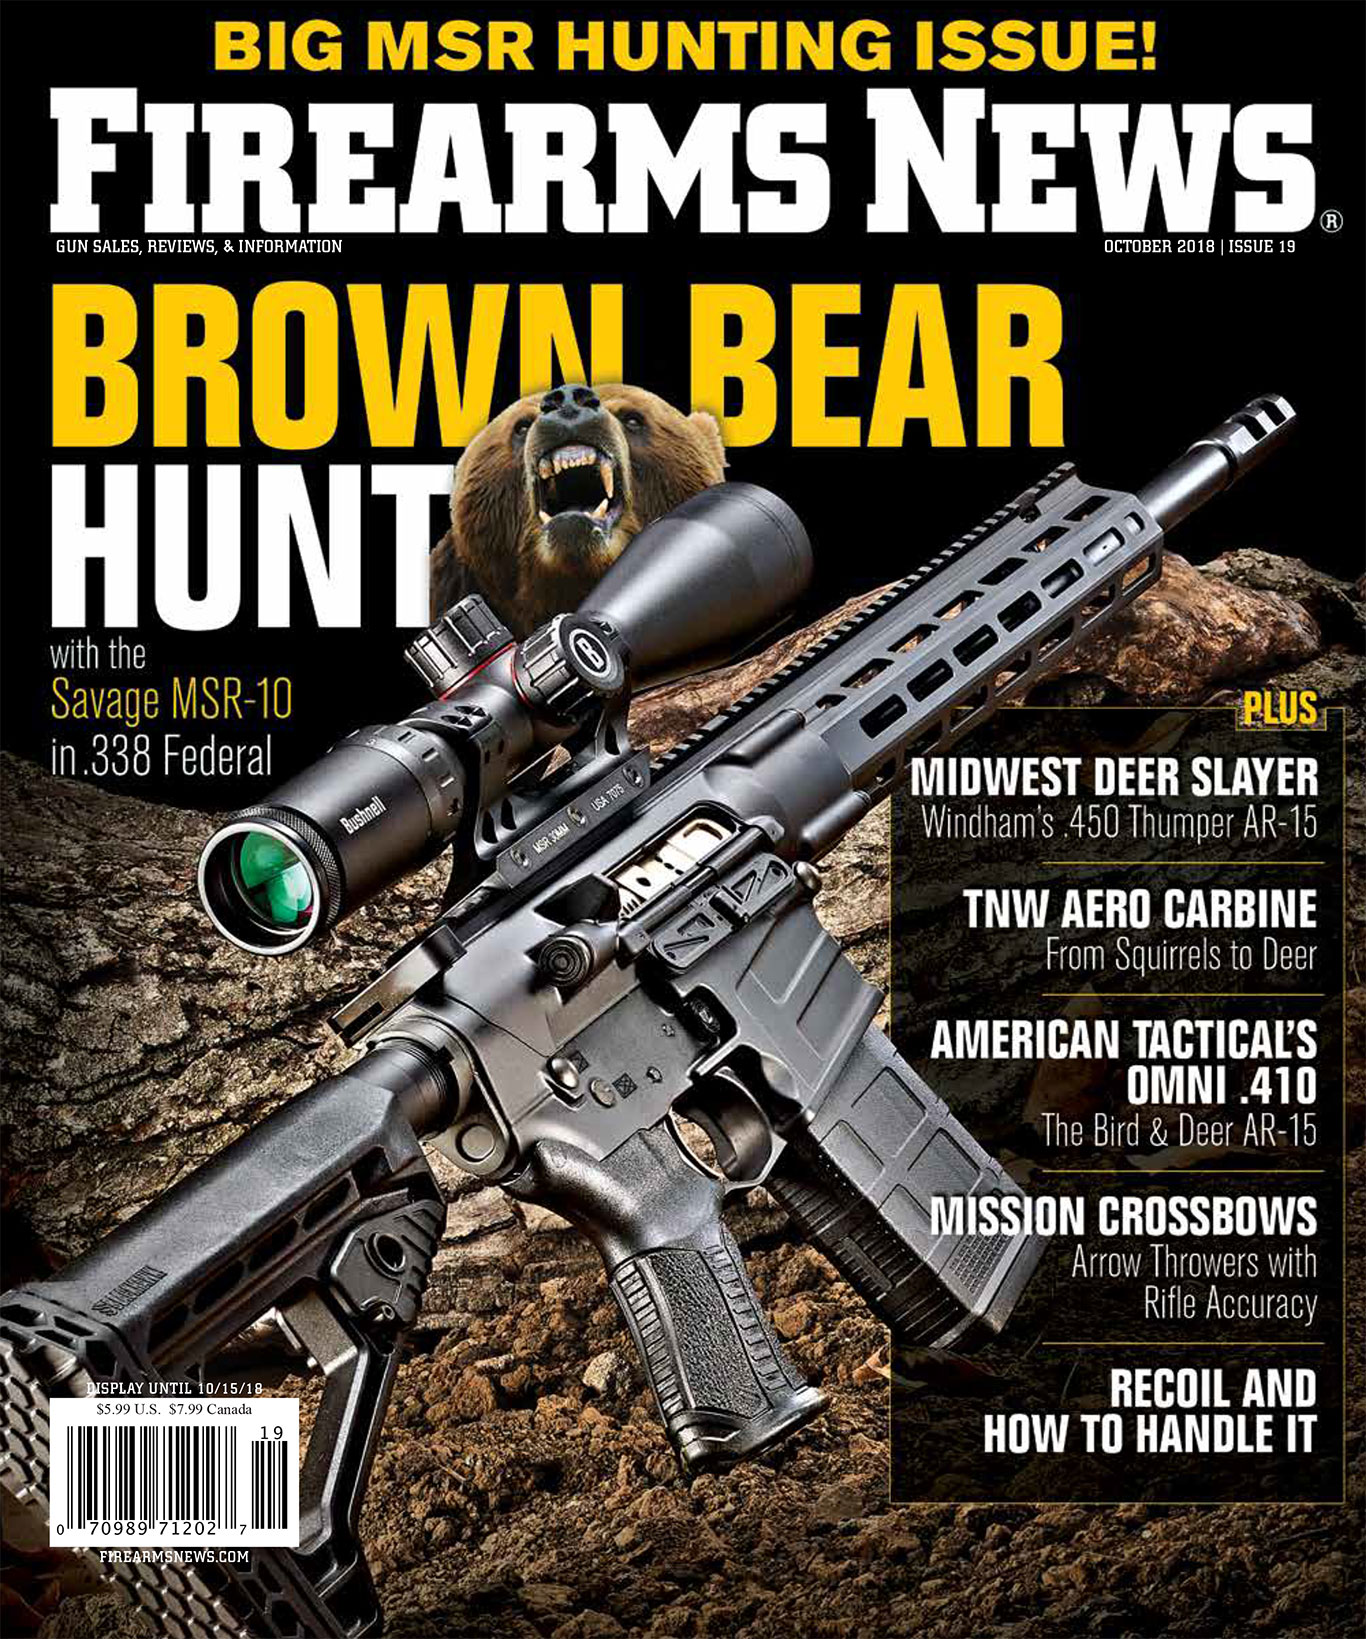 Firearms-News-MSR-issue19-COVER